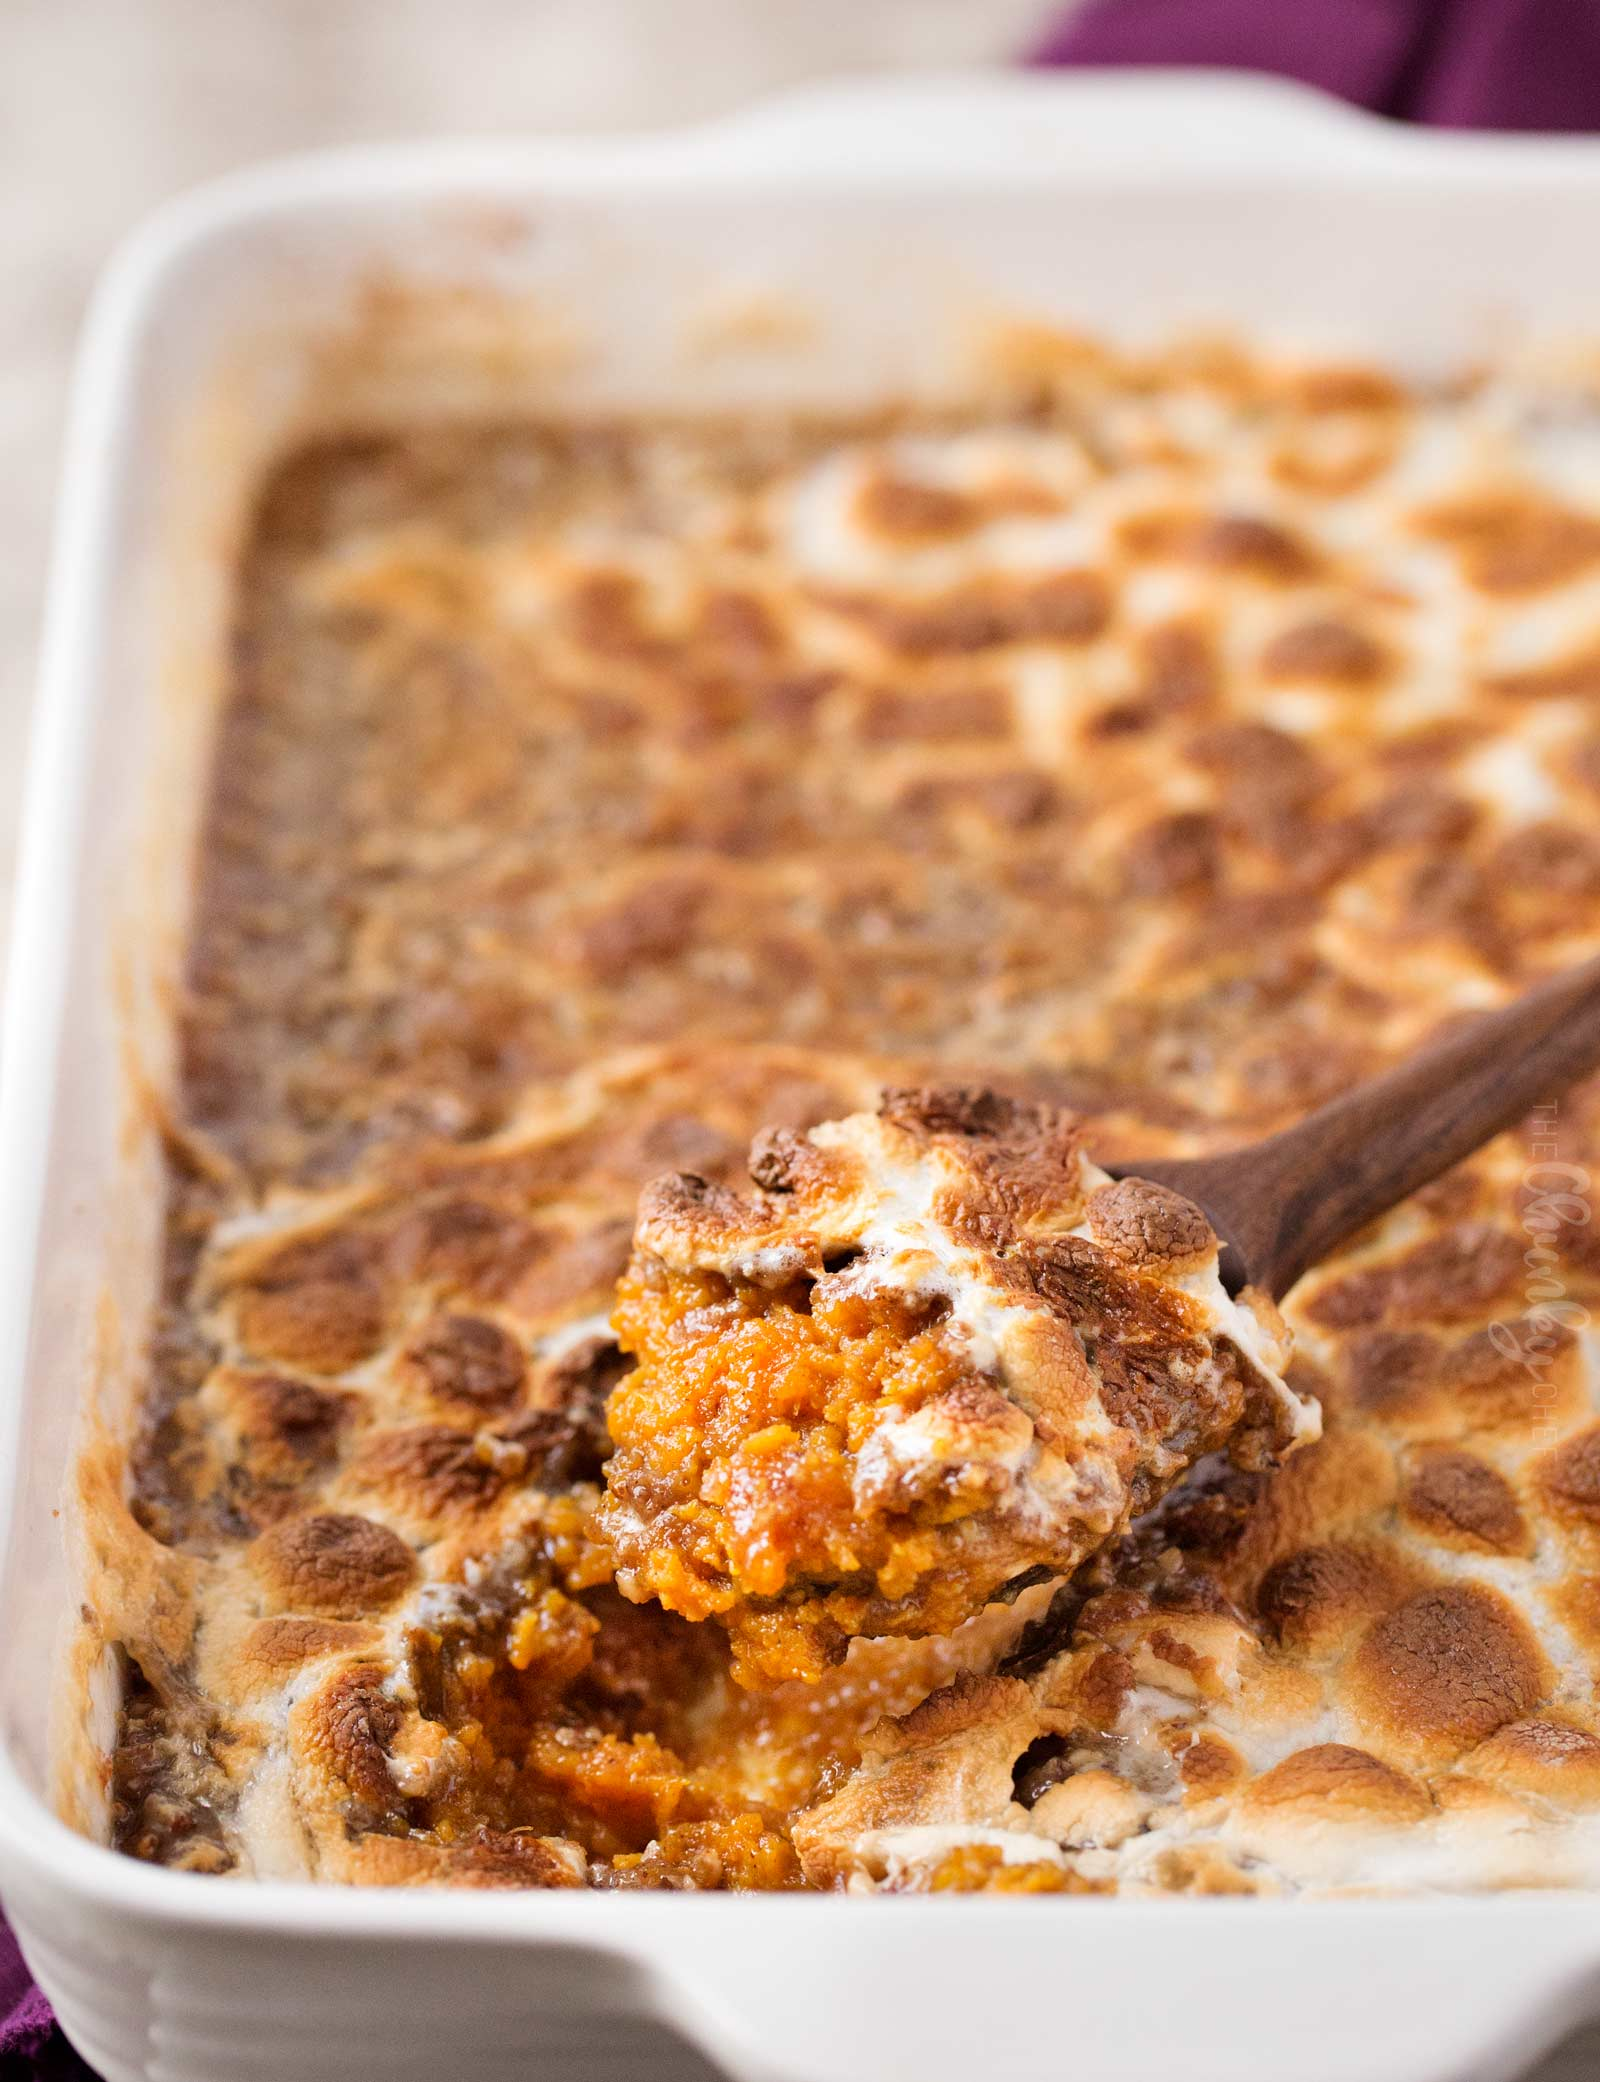 Spiced Sweet Potato Casserole | Mashed sweet potatoes are spiced with warm Fall spices, then topped with a crunchy pecan crumble and gooey marshmallows.  Perfect for Thanksgiving or any holiday! | The Chunky Chef | #sweetpotato #sweetpotatocasserole #Thanksgivingrecipe #sidedish #casserolerecipe #holidayrecipe